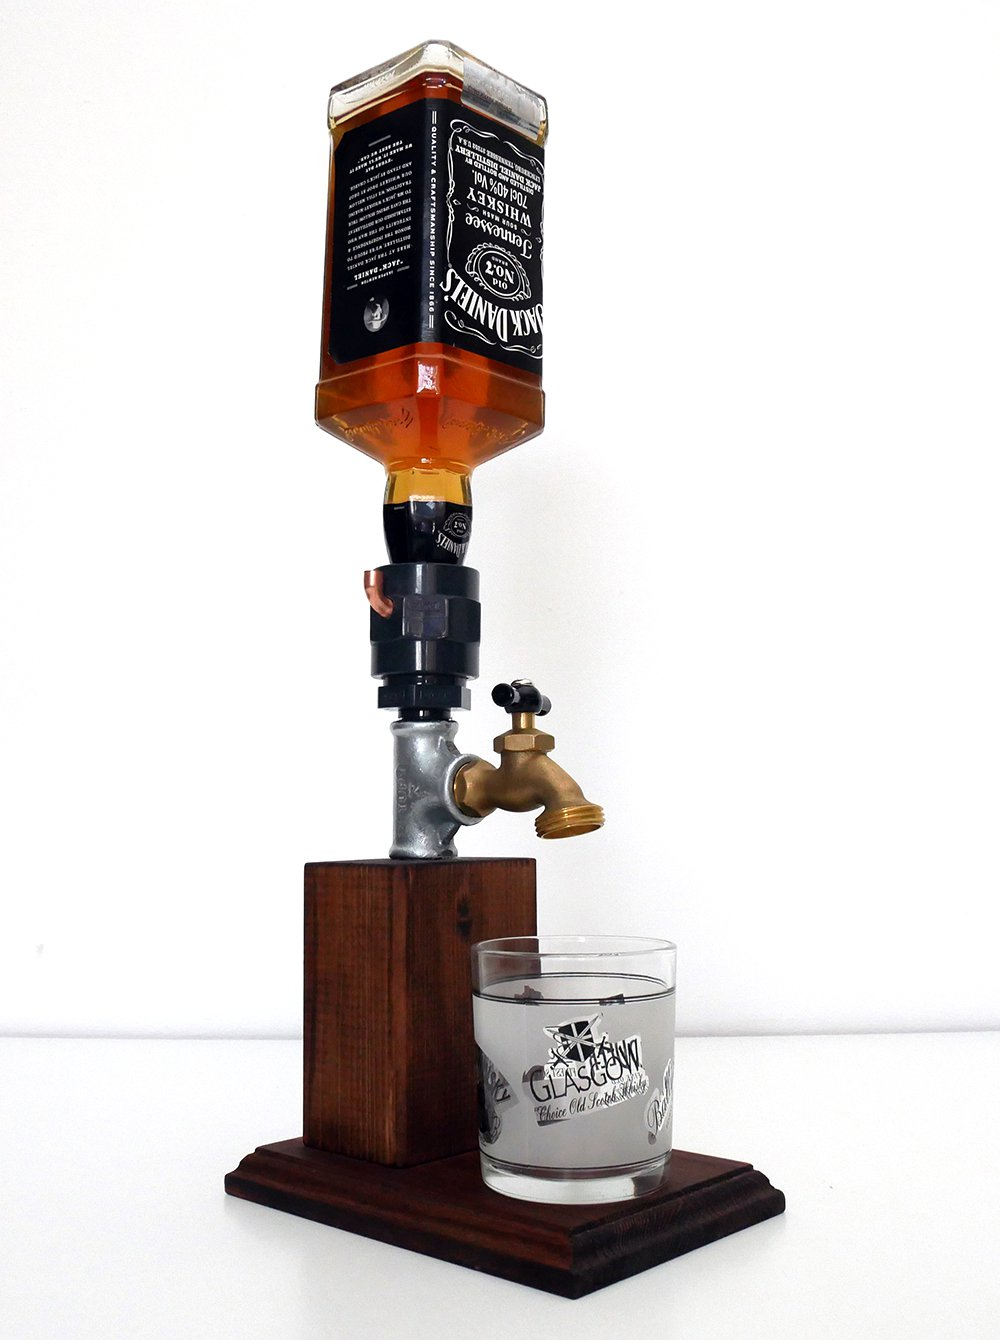 Handmade Wooden Alcohol Dispenser - Small, Two tone